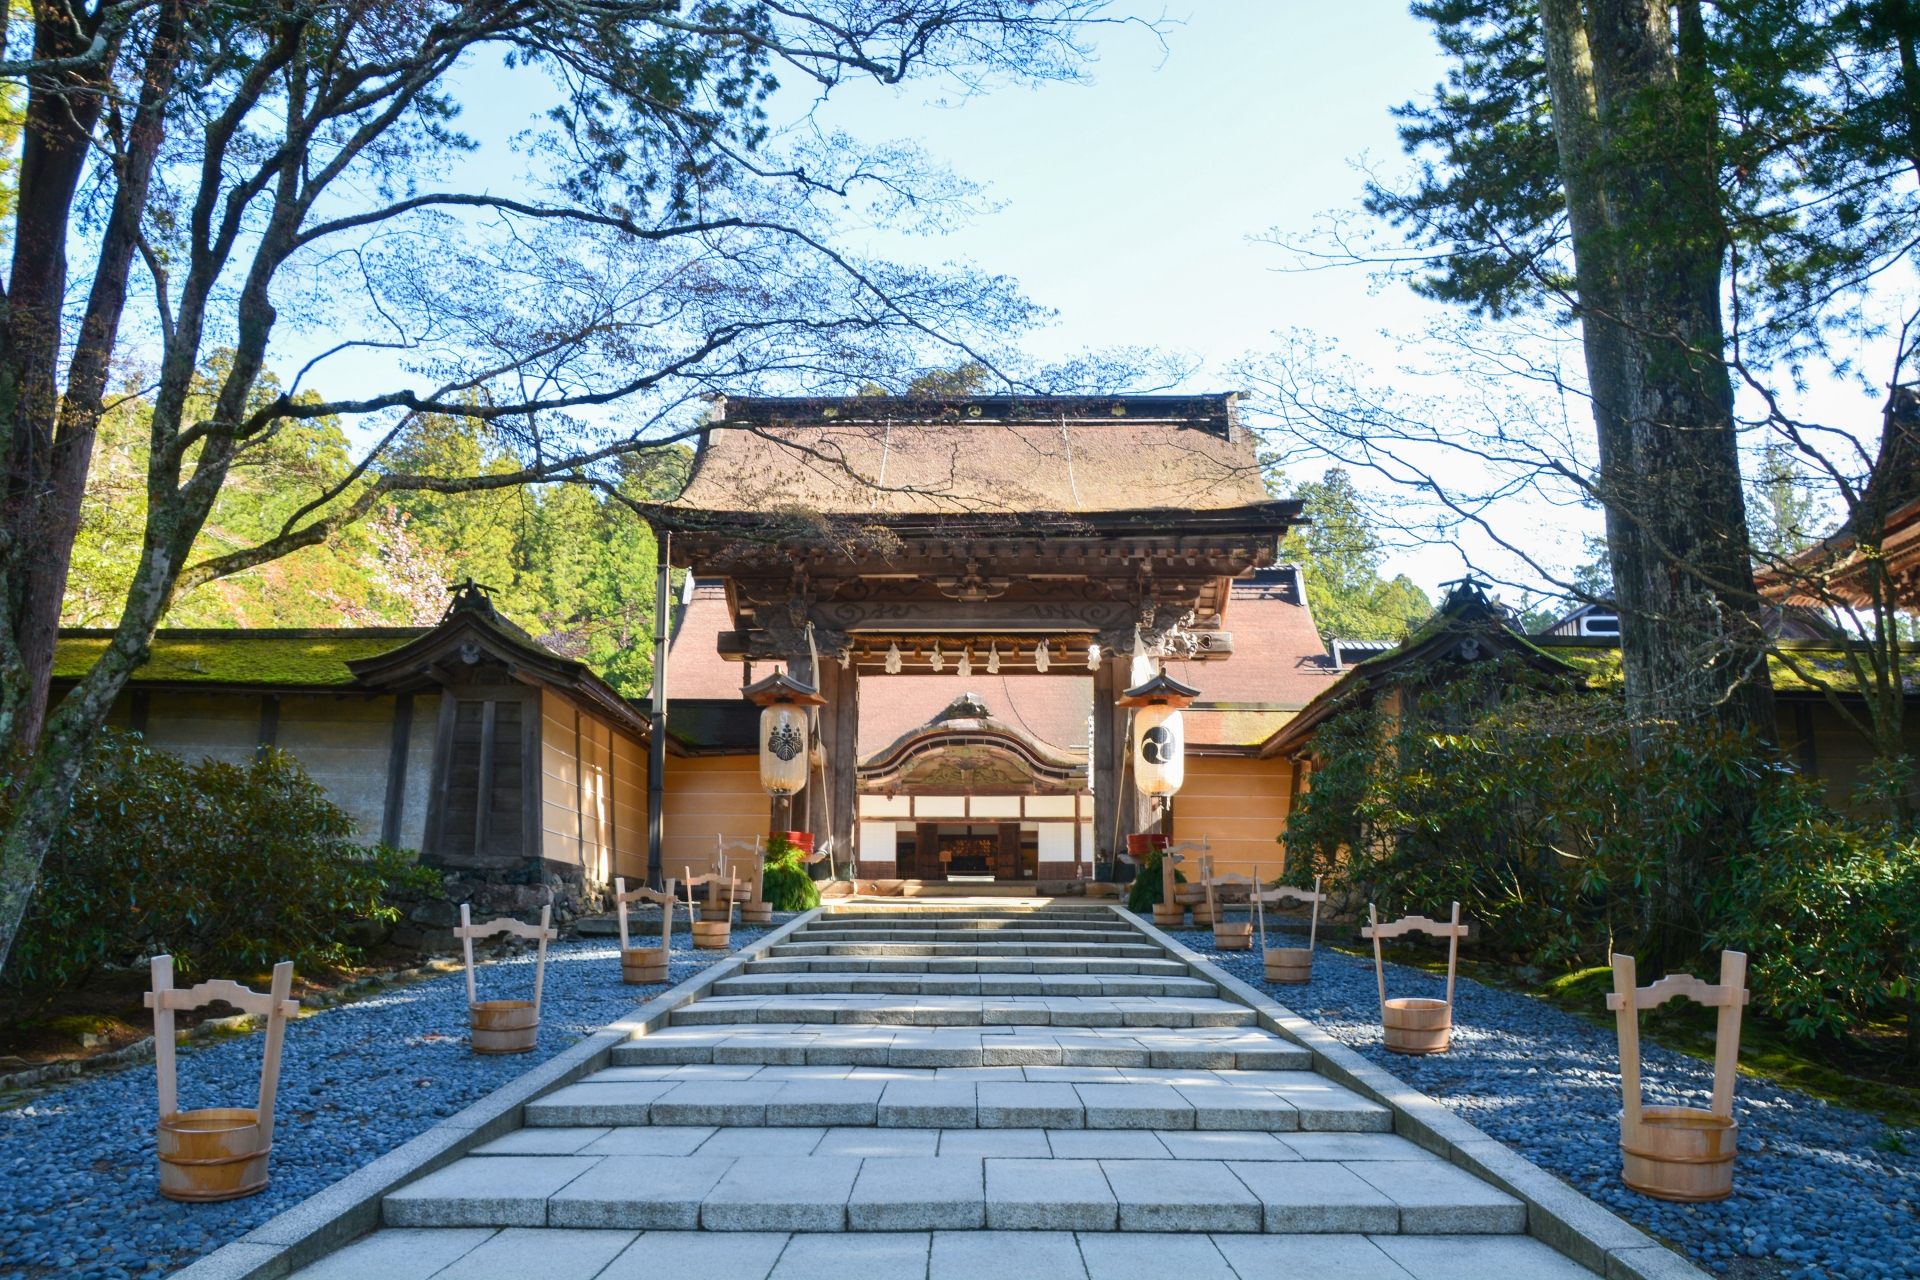 Peace and spirituality at Mt. Koya: UNESCO World Heritage site in Wakayama